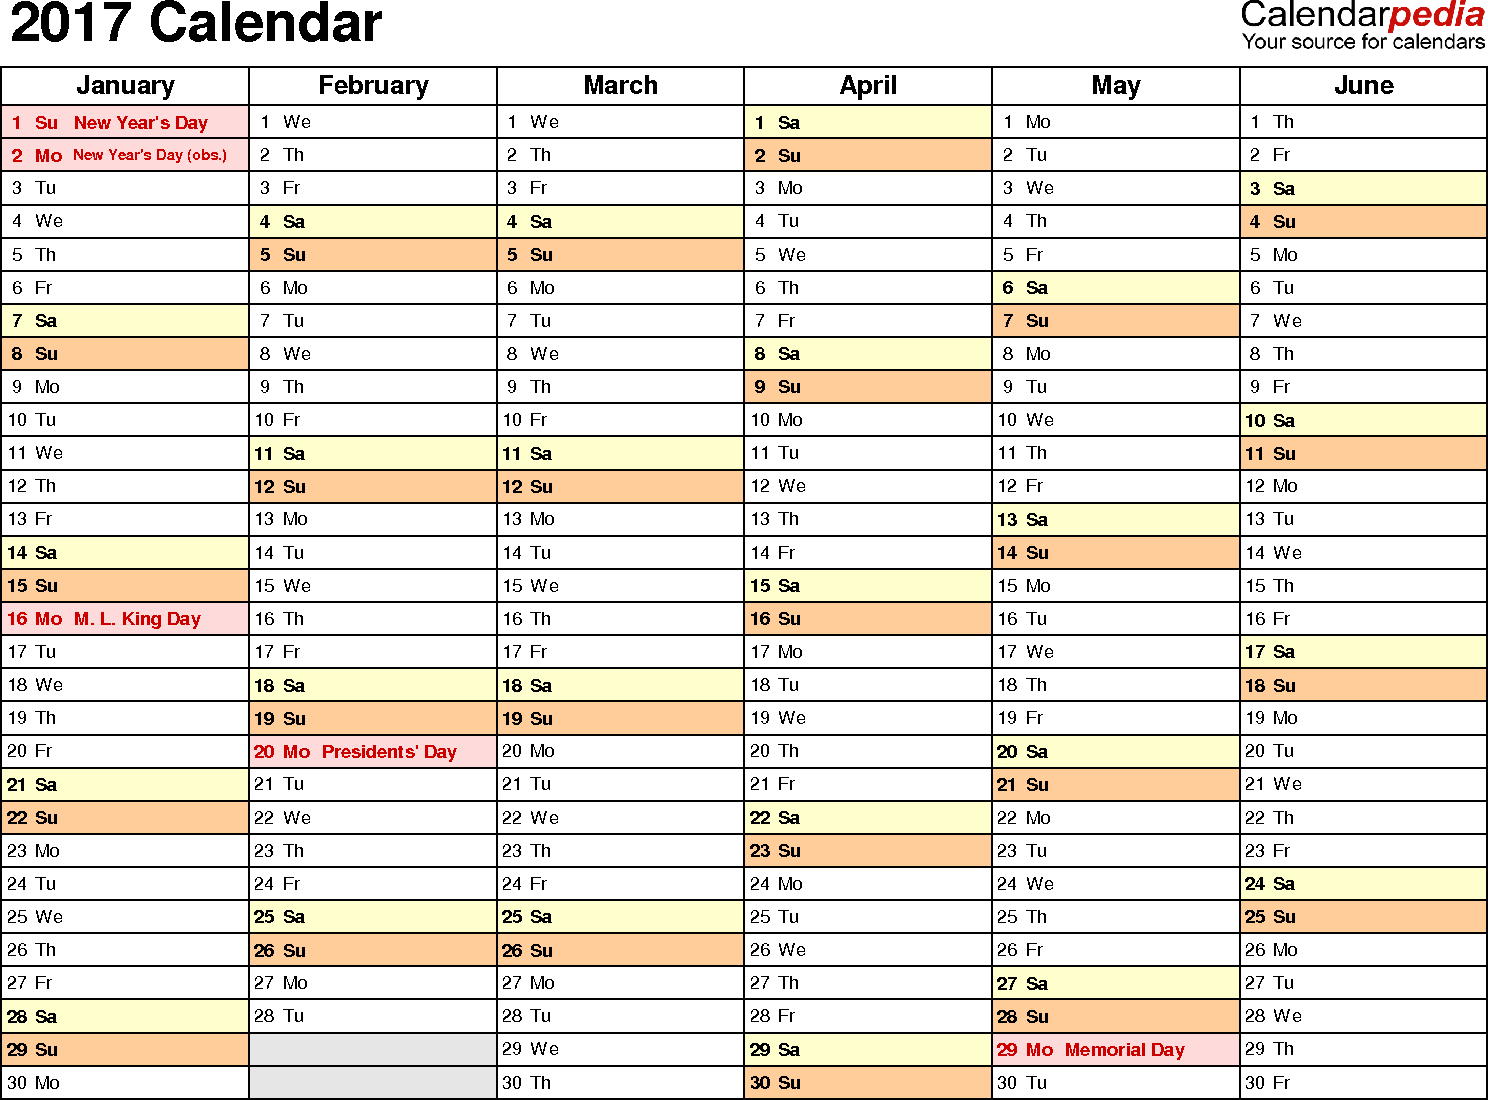 Ediblewildsus  Prepossessing  Calendar  Download  Free Printable Excel Templates Xls With Handsome Template   Calendar For Excel Months Horizontally  Pages Landscape Orientation With Easy On The Eye Percentiles Excel Also Excel If Cell Contains Certain Text In Addition Excel To Mediawiki And Free Excel Test For Hiring As Well As Linear Regression In Excel  Additionally T Critical Value Excel From Calendarpediacom With Ediblewildsus  Handsome  Calendar  Download  Free Printable Excel Templates Xls With Easy On The Eye Template   Calendar For Excel Months Horizontally  Pages Landscape Orientation And Prepossessing Percentiles Excel Also Excel If Cell Contains Certain Text In Addition Excel To Mediawiki From Calendarpediacom